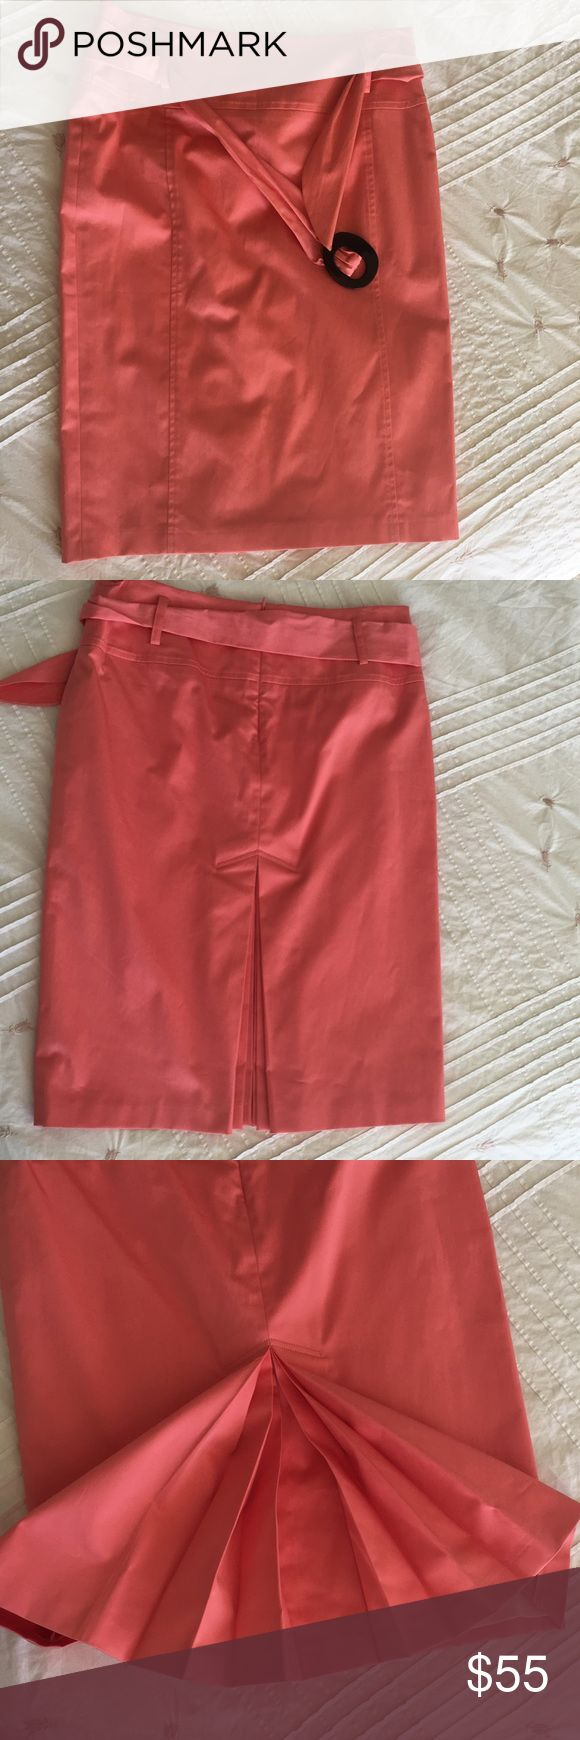 Strenesse - Gabriele Strehle coral pencil skirt Never worn. Beautiful detail on belt and back pleat. Strenesse Skirts Pencil